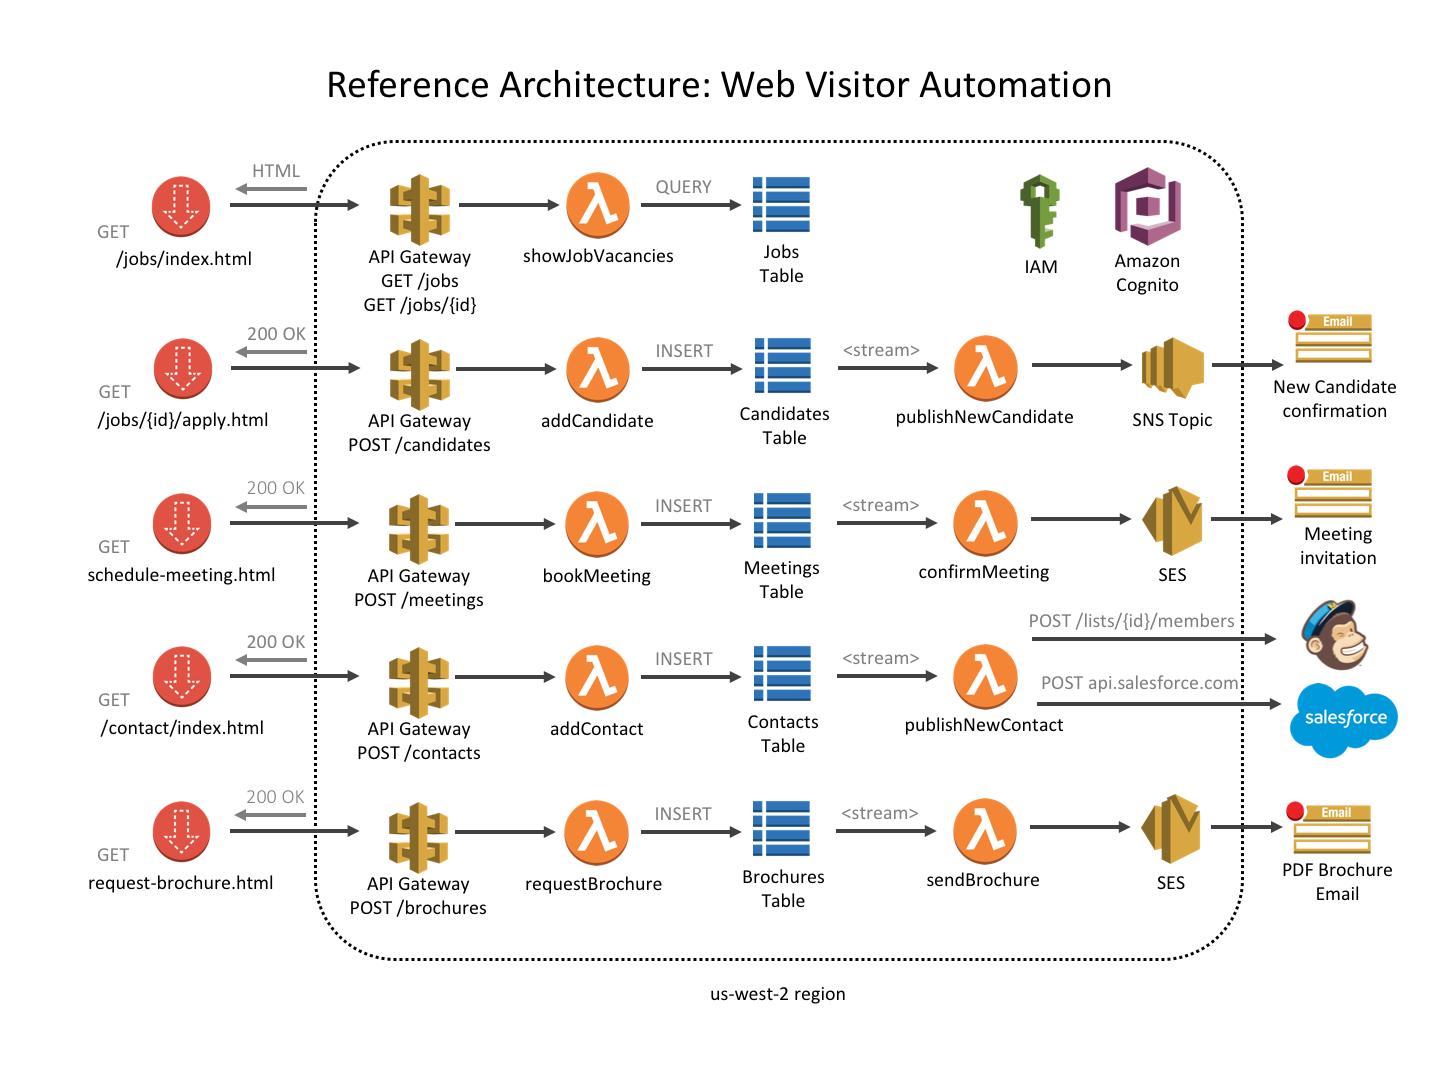 Reference Architecture: Web Visitor Automation